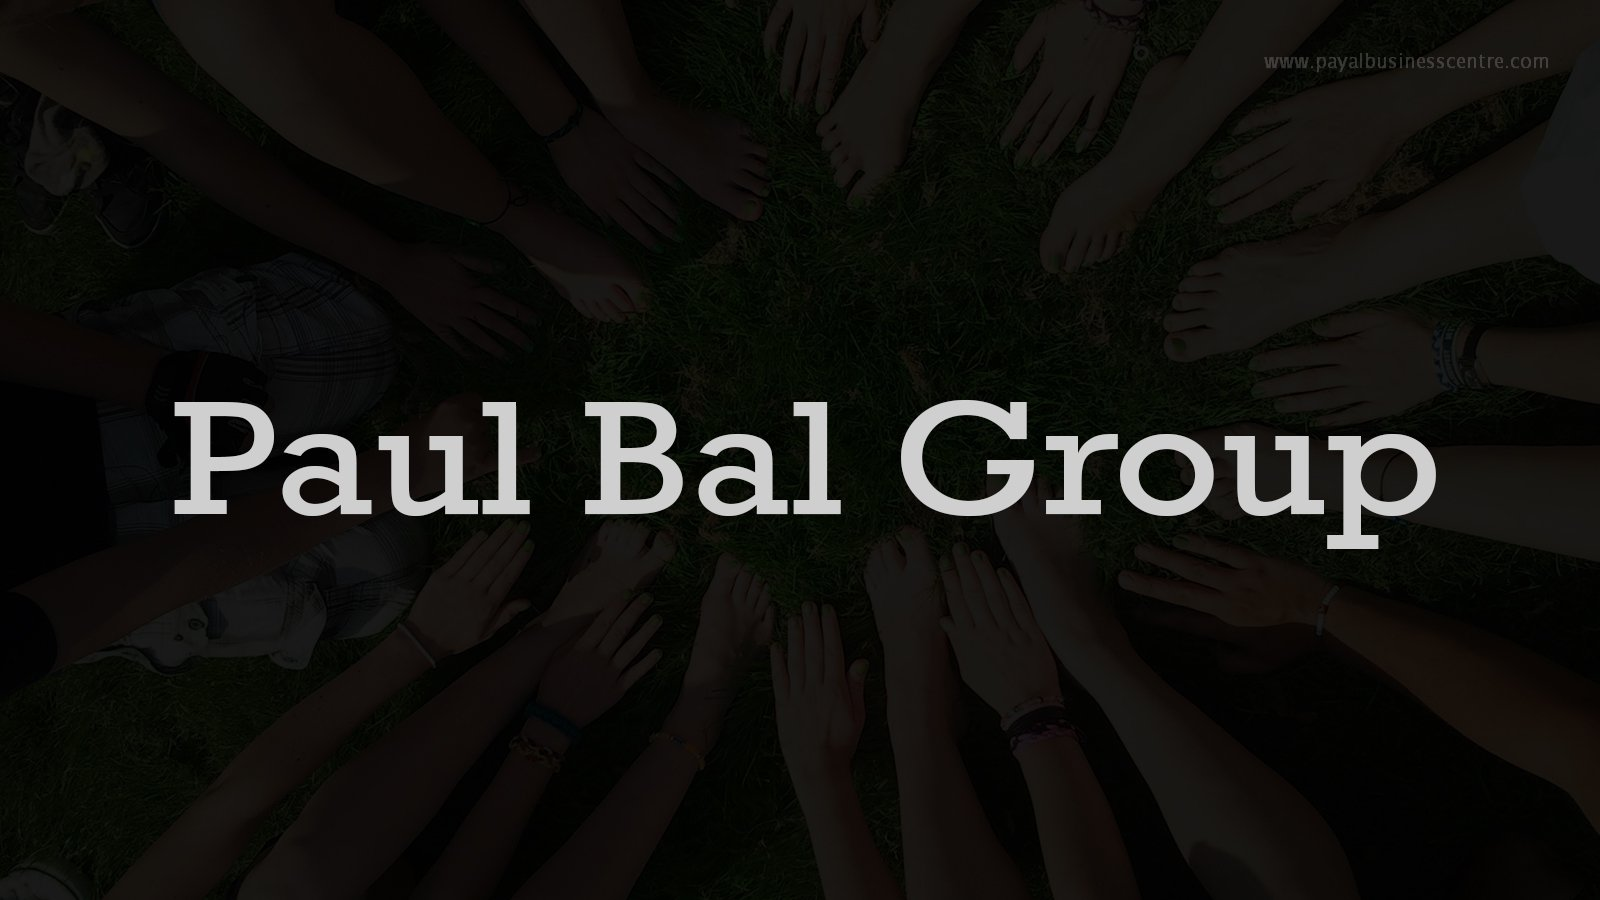 Paul Bal Group